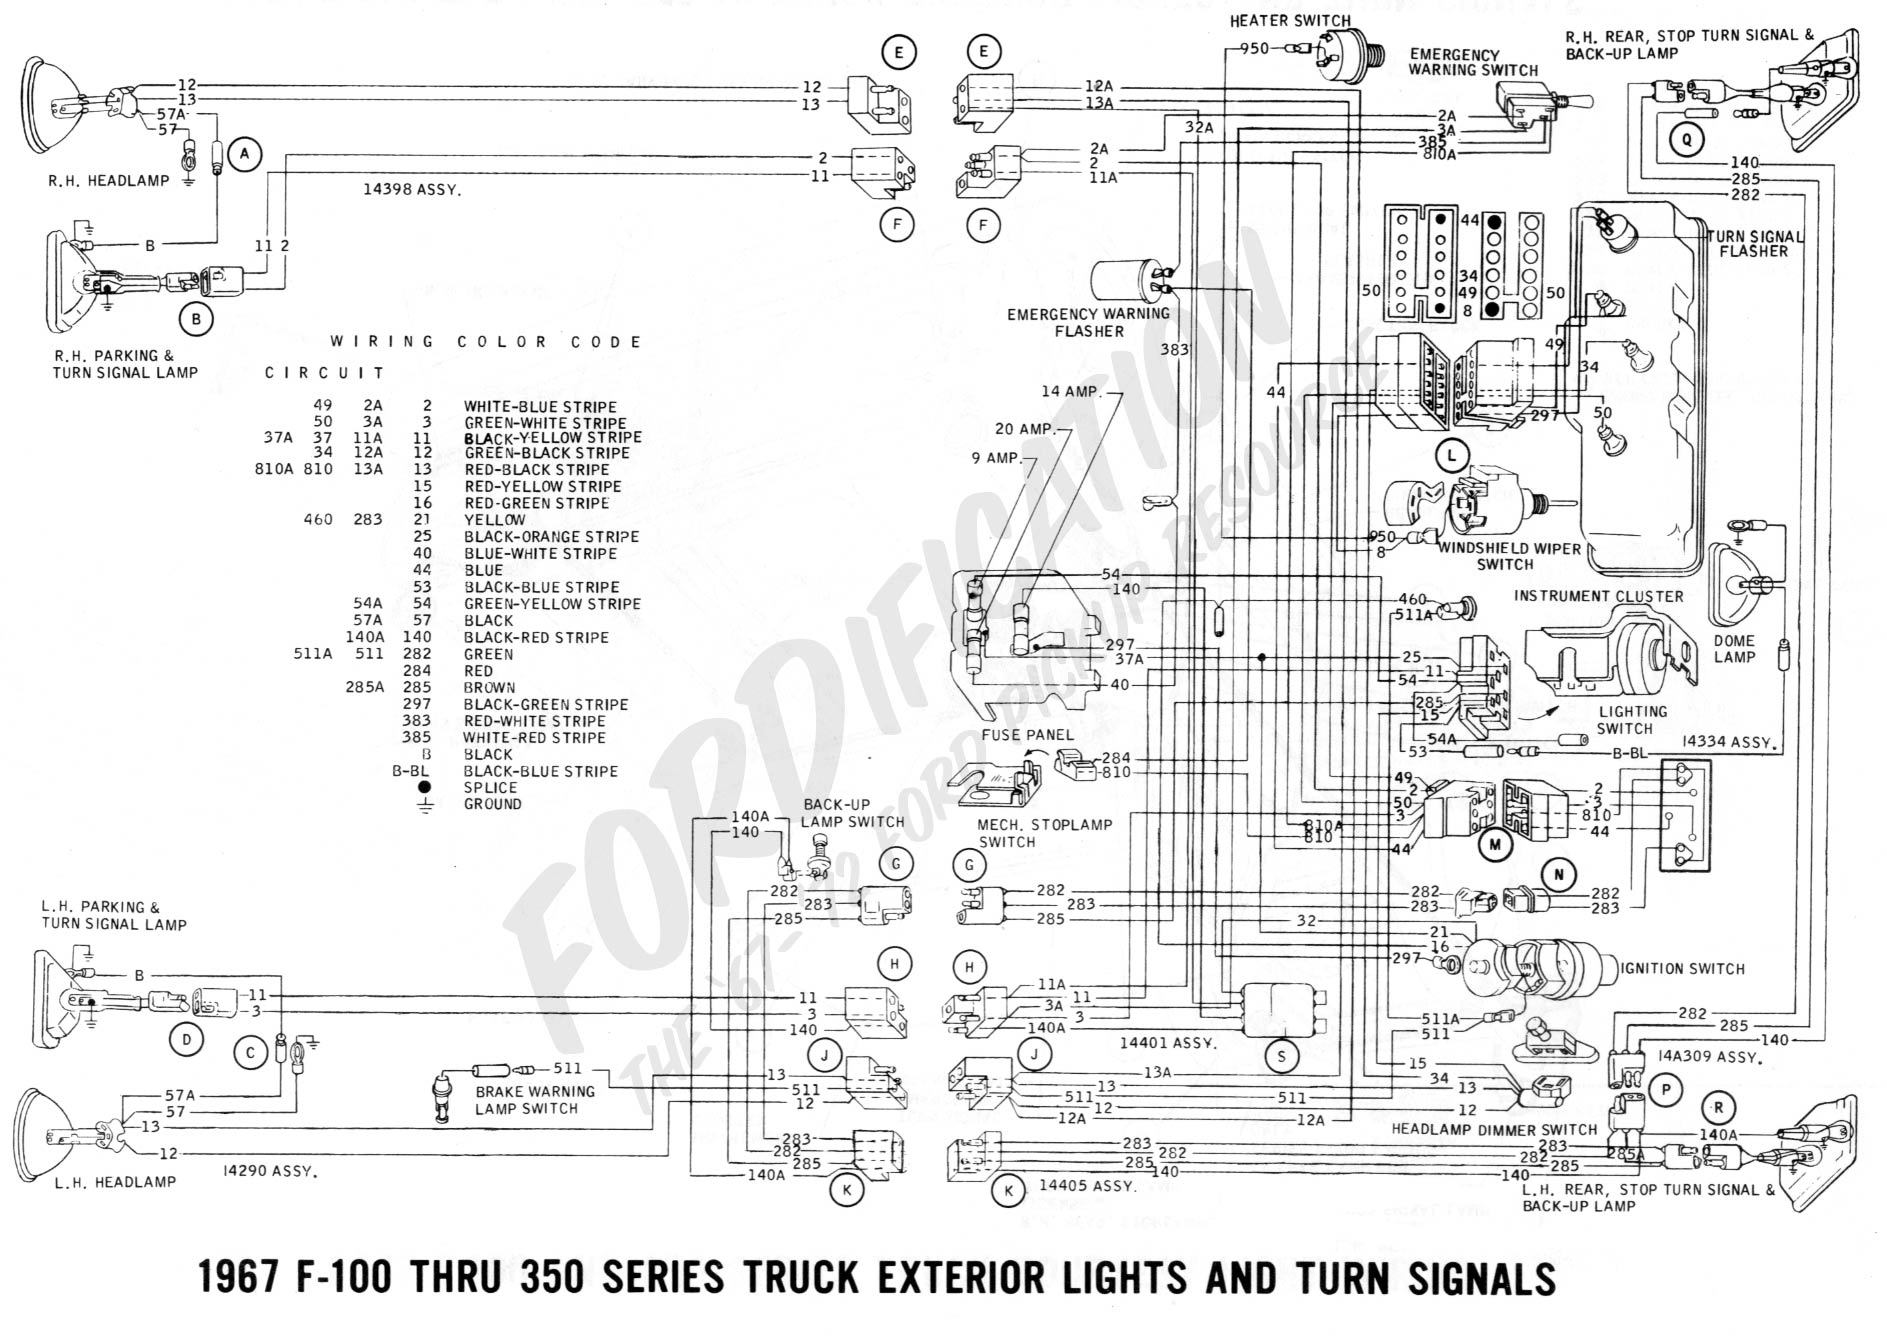 80 1967_exterior_lights_and_turn_signals_page_2_1db6c529c4c9567560e56d6320f993290ba5b803 1967 mustang wiring diagram efcaviation com 1966 mustang wiring diagrams at nearapp.co